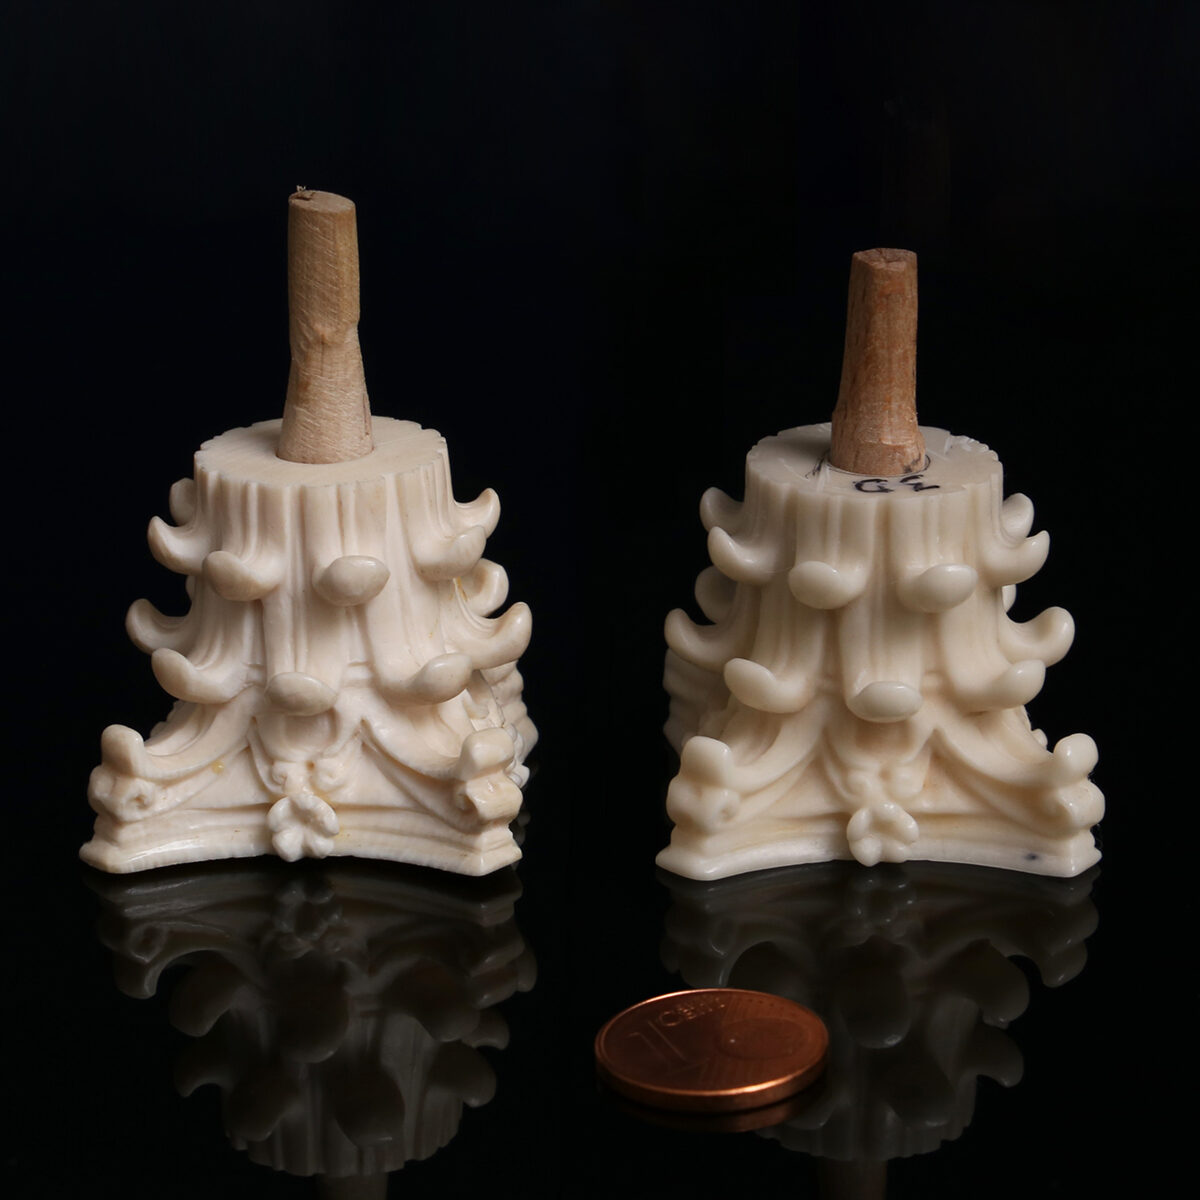 3D-printed material to replace ivory